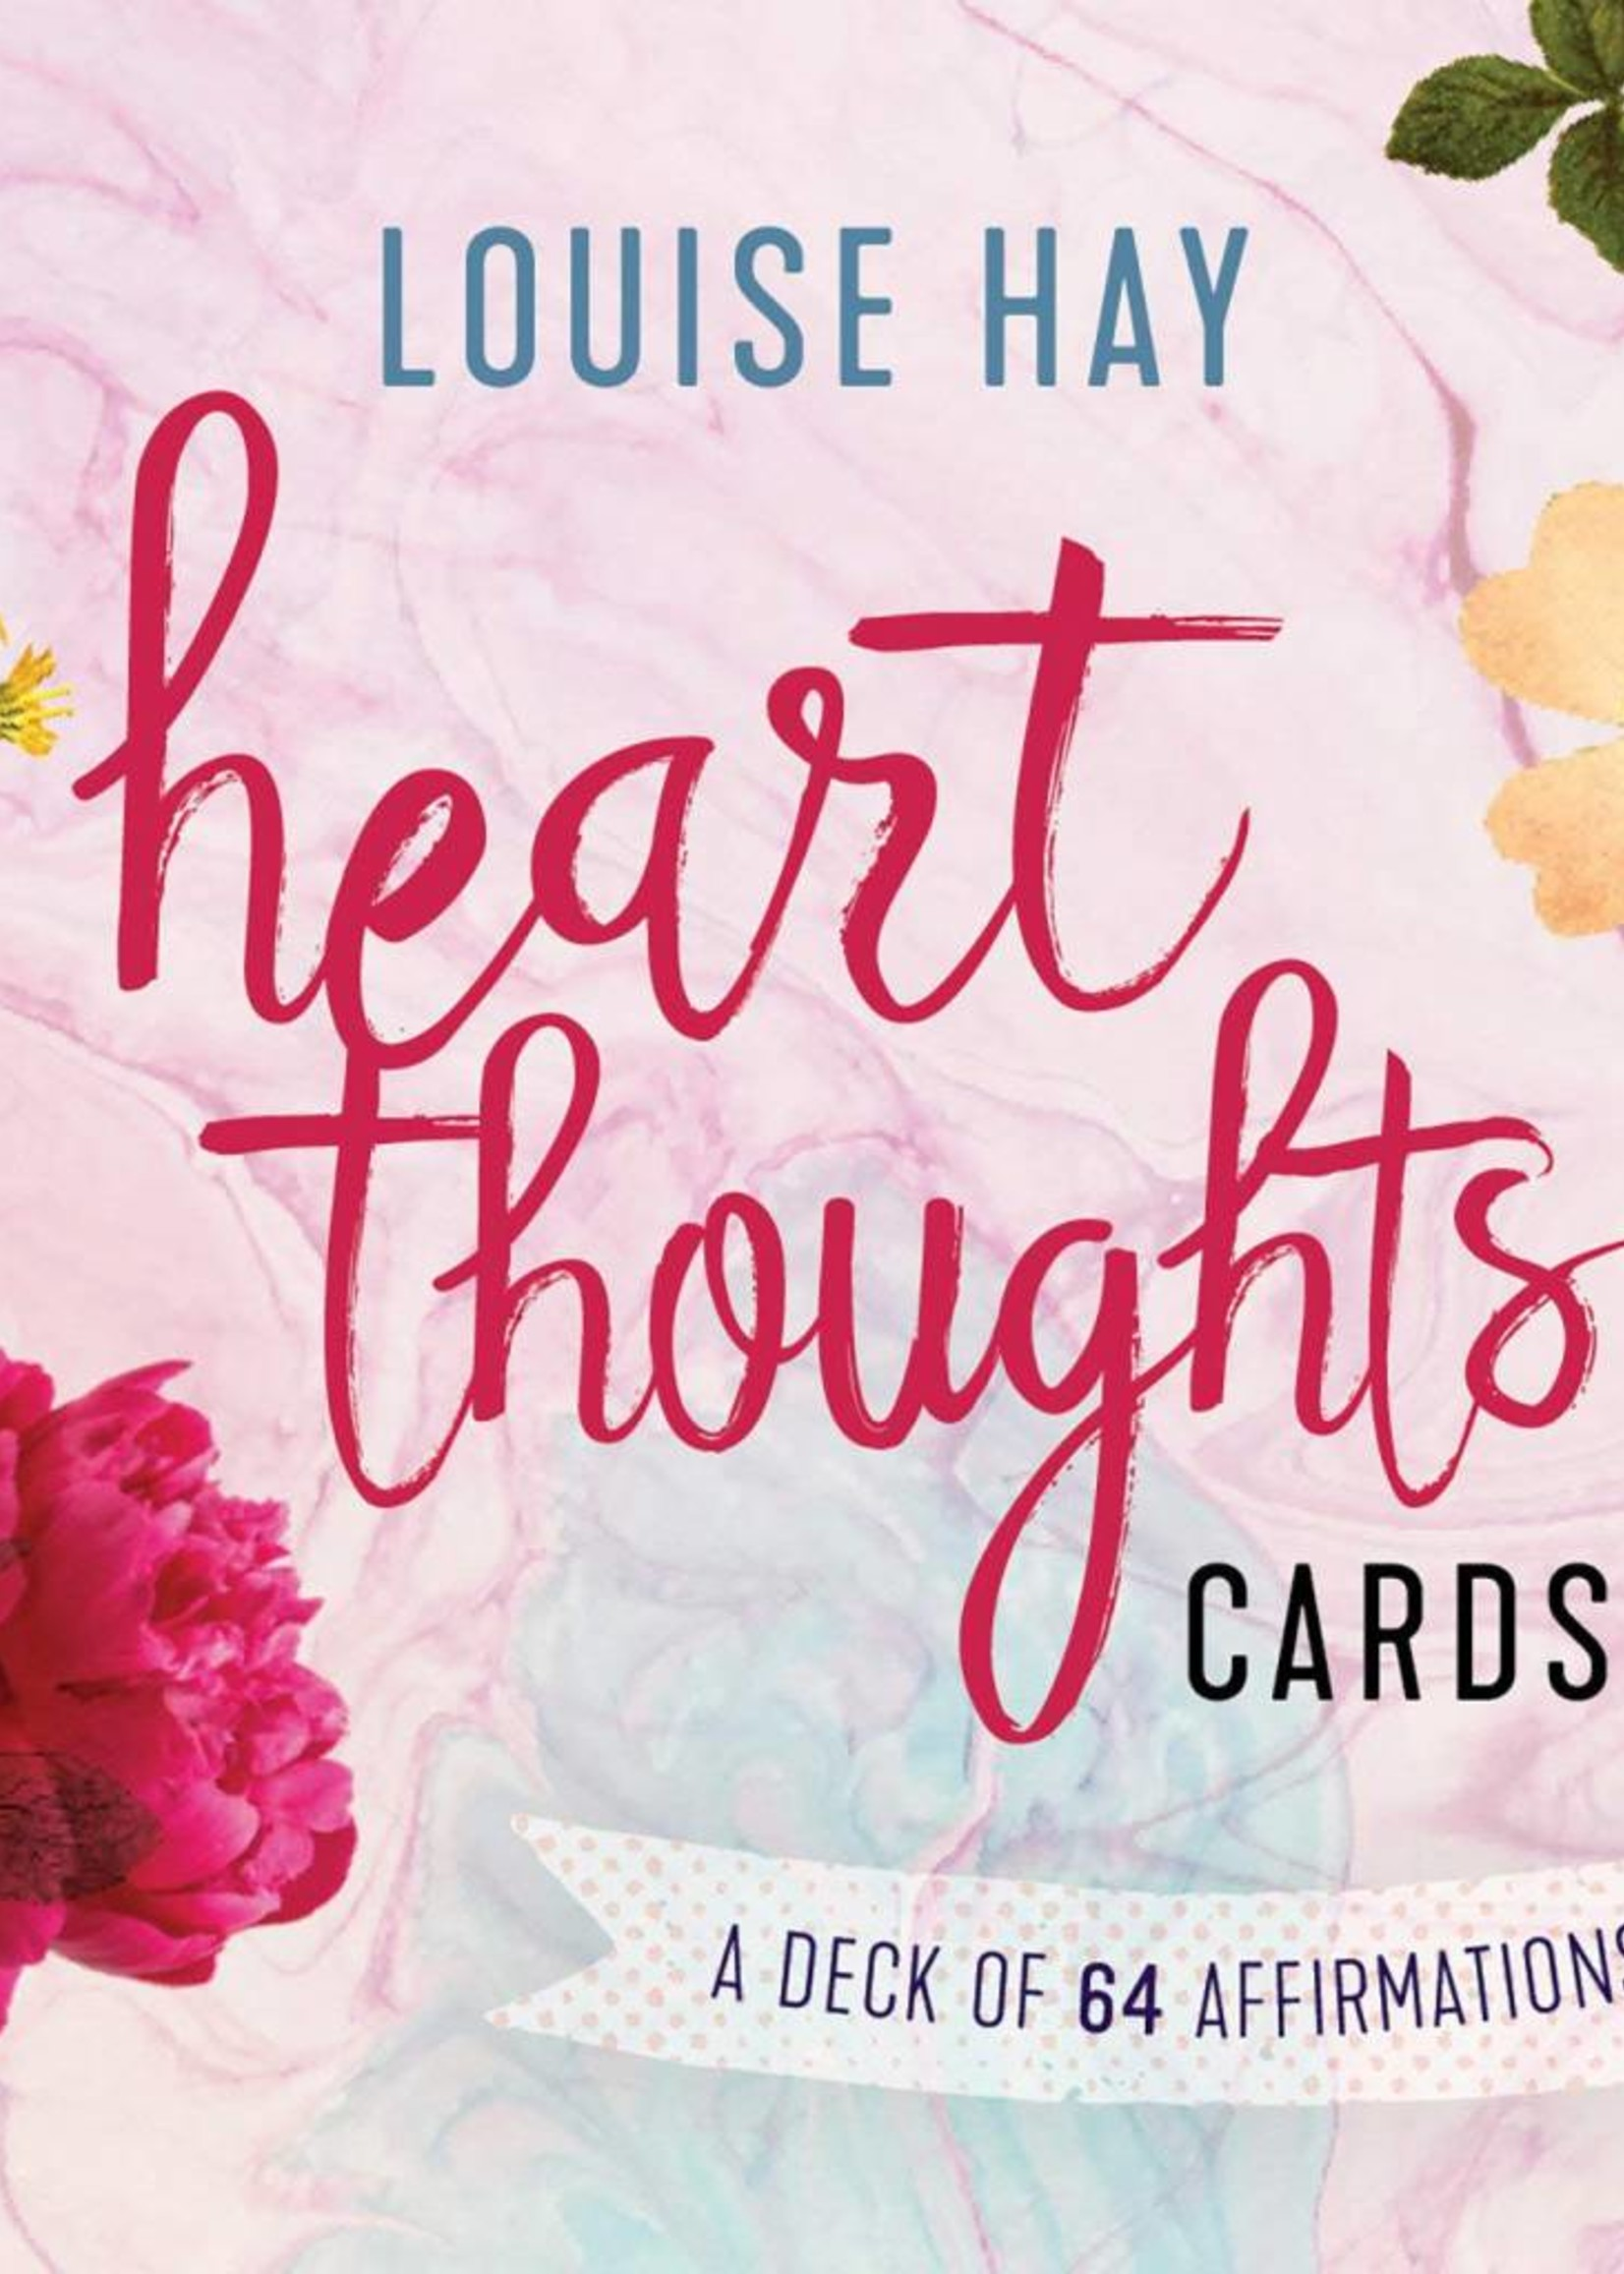 Heart Thoughts Cards Deck